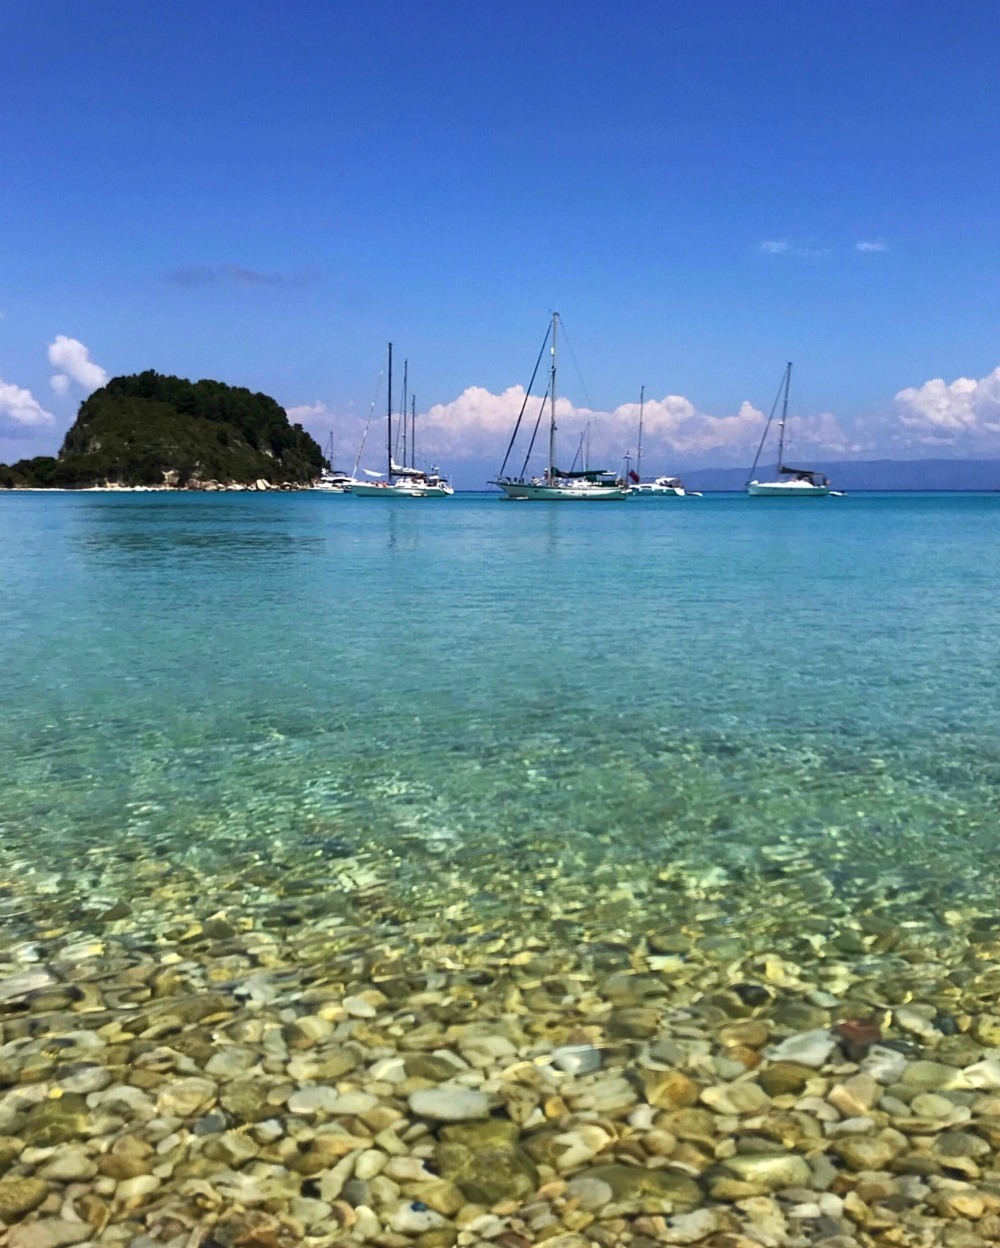 Lakka Bay in Paxos Greece Photo Heatheronhertravels.com